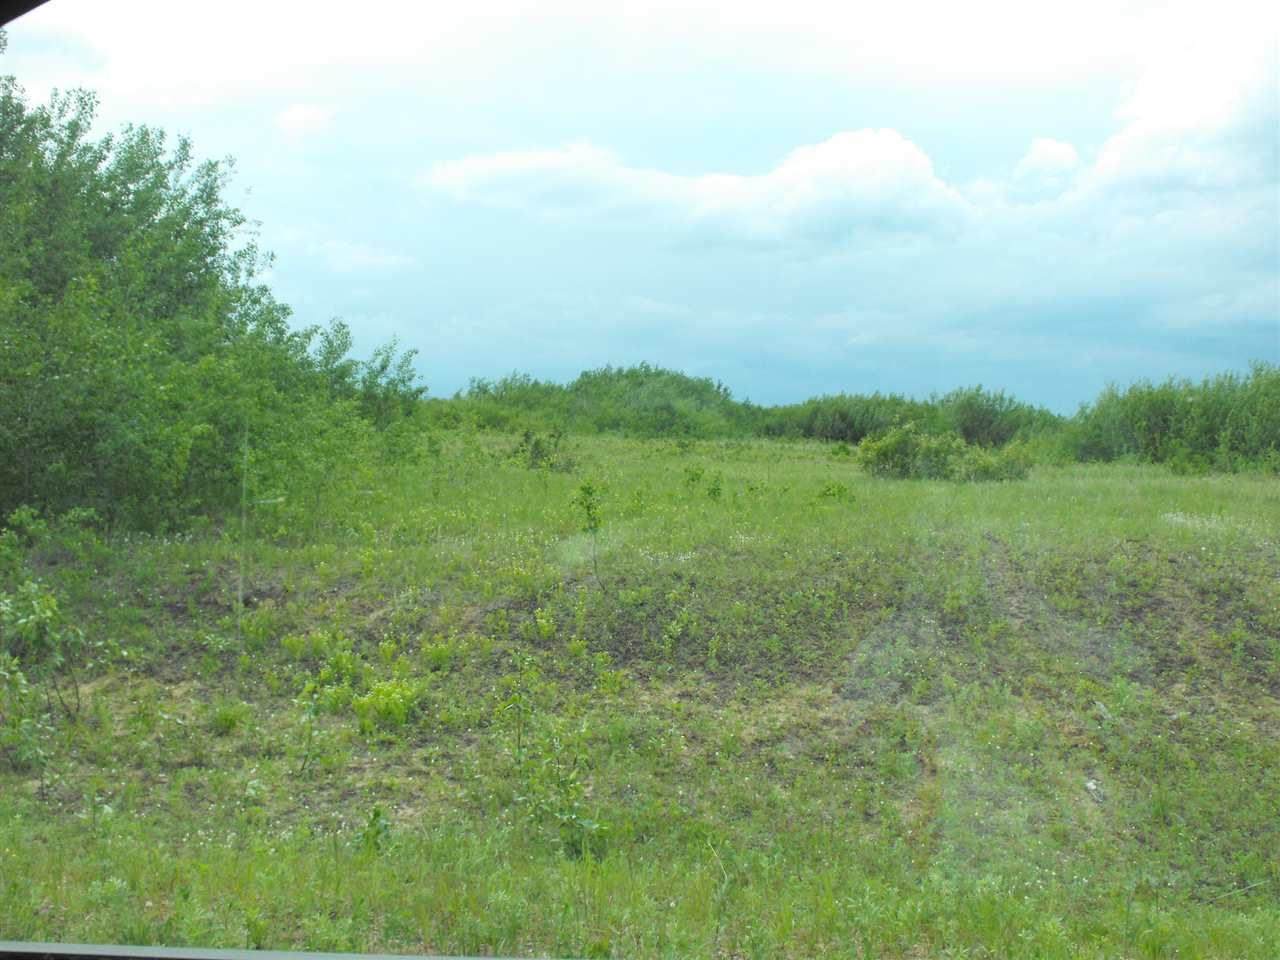 Main Photo: 134 56514 Rg Rd 60: Rural St. Paul County Rural Land/Vacant Lot for sale : MLS®# E4204219